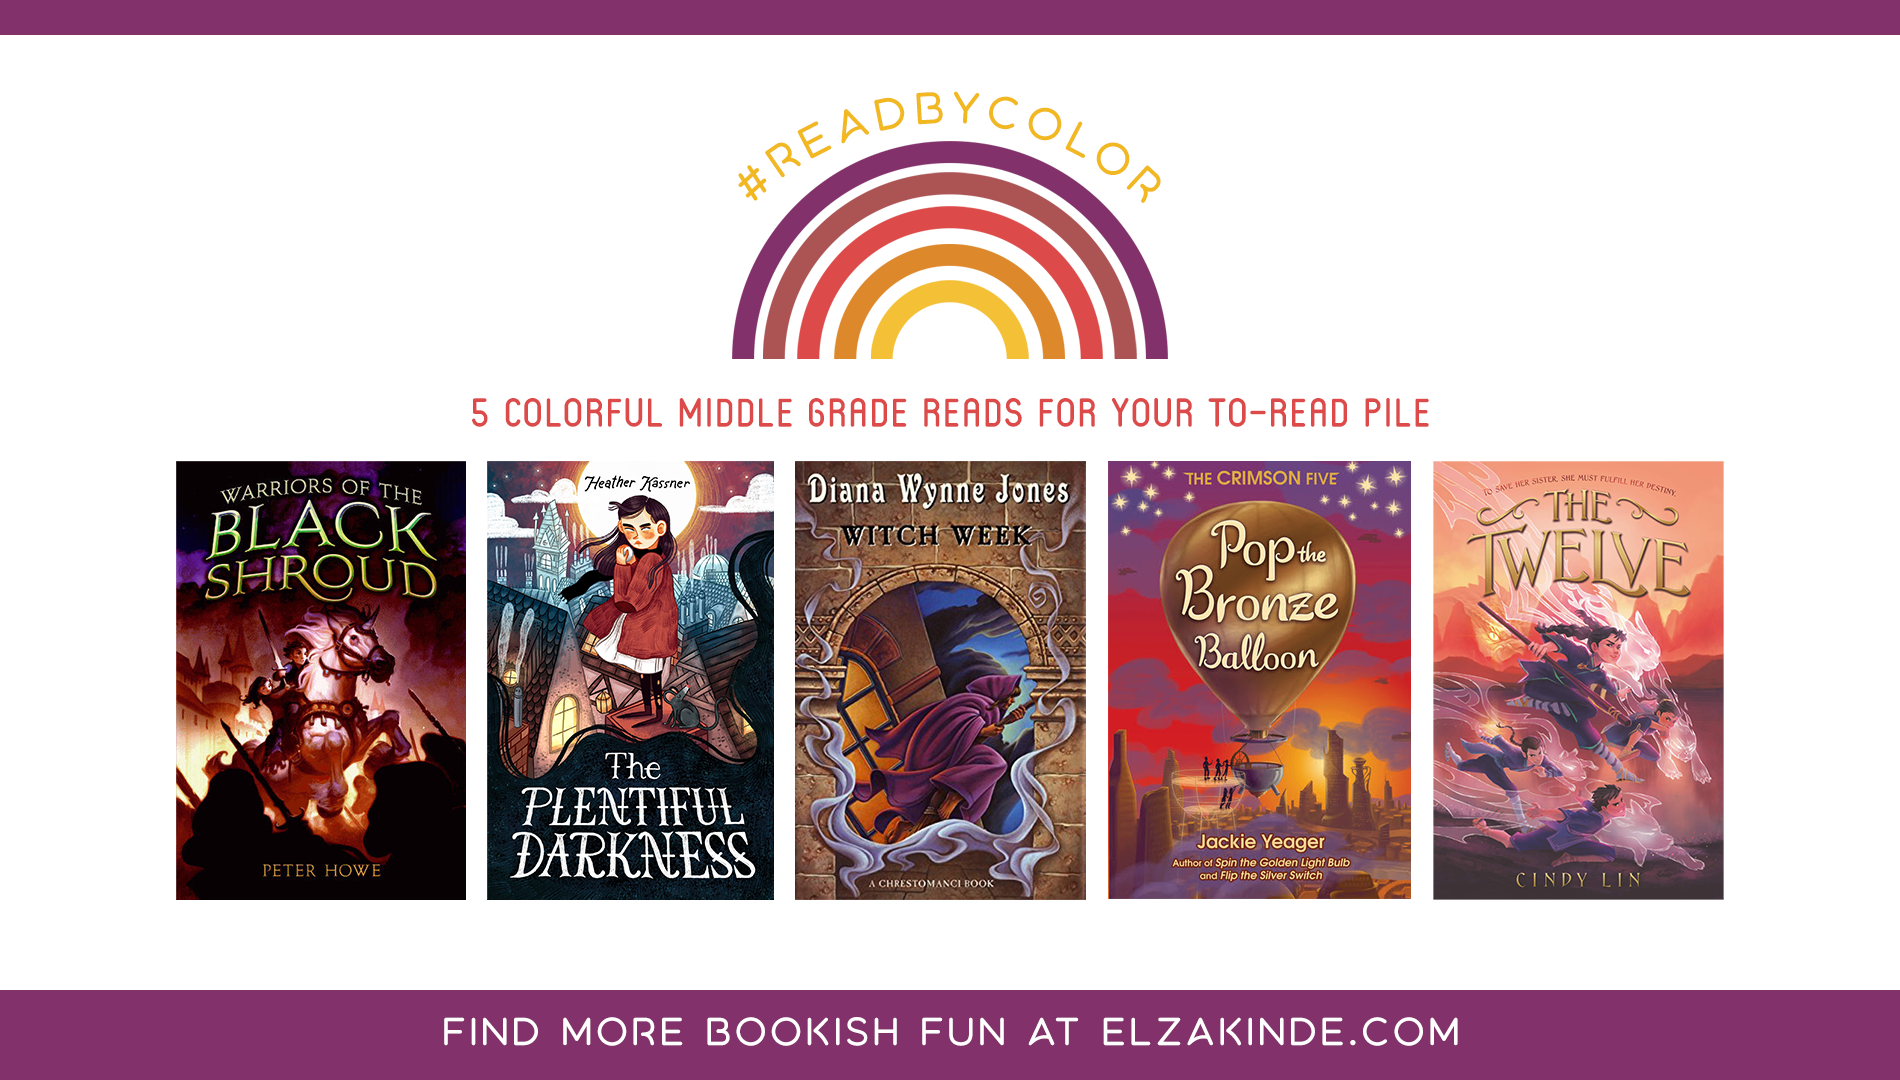 #ReadByColor: 5 Colorful Middle Grade Reads for Your To-Read Pile | features the book covers of WARRIORS OF THE BLACK SHROUD by Peter Howe; THE PLENTIFUL DARKNESS by Heather Kassner; WITCH WEEK by Diana Wynne Jones; POP THE BRONZE BALLOON by Jackie Yeager; and THE TWELVE by Cindy Lin